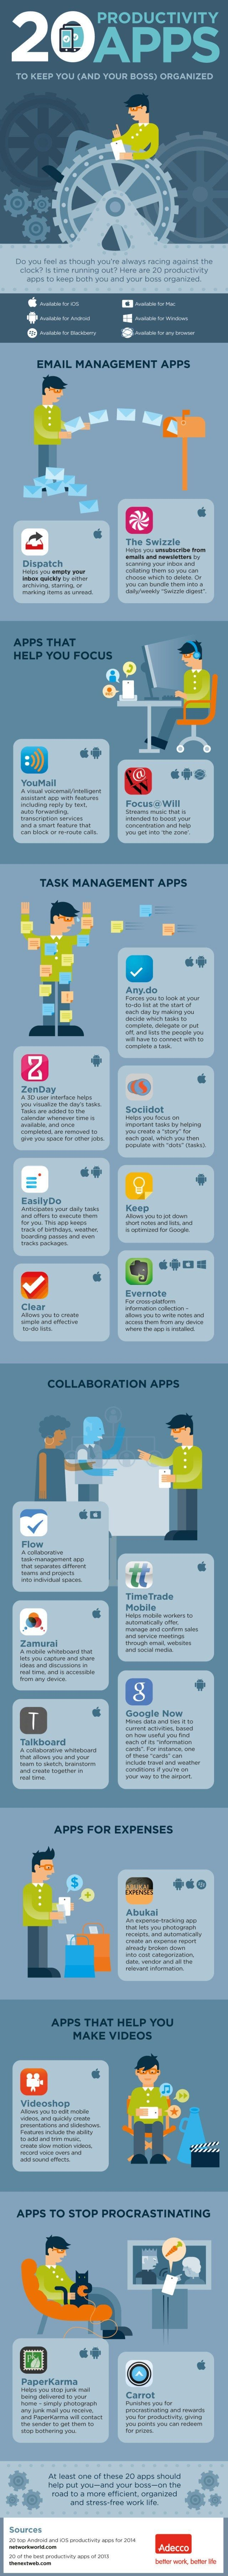 Technology to aid productivity In this technologically advanced age, it would be amiss to not mention apps that can help boost our productivity. The infographic below shares 20 apps that help you remain on task and stay focused.